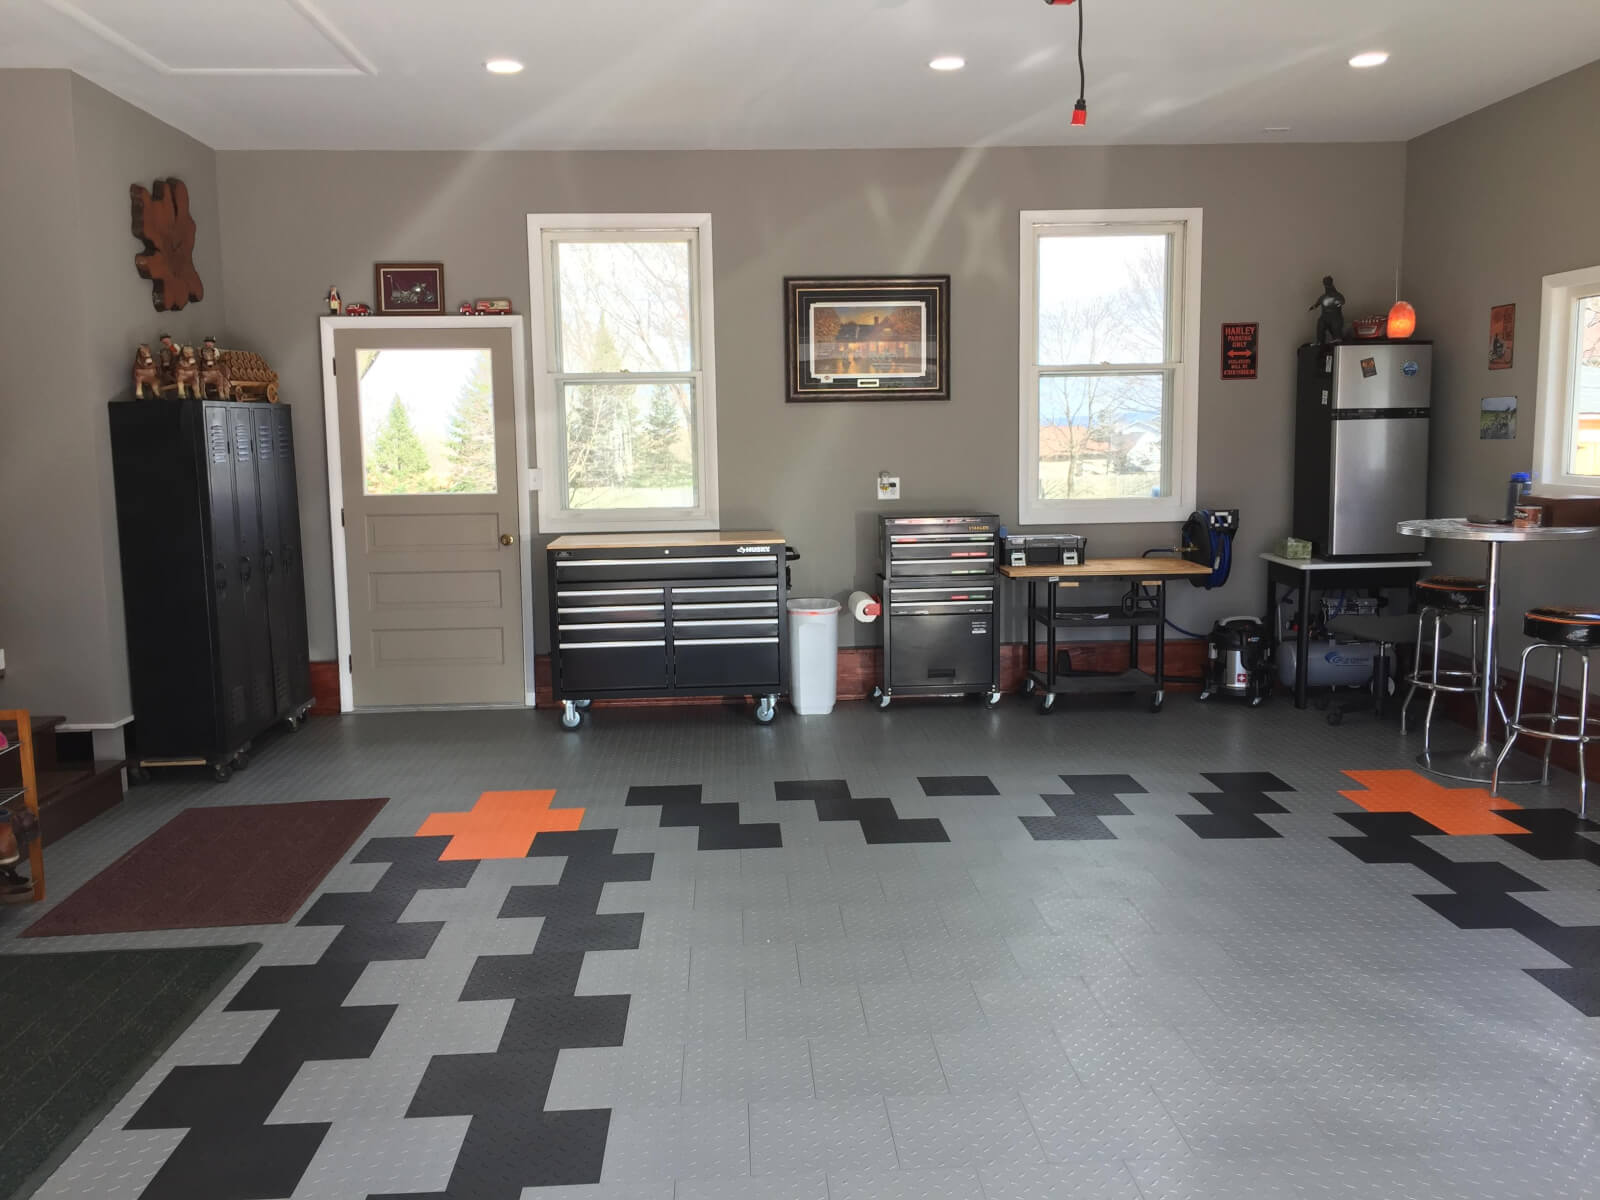 What acrylic floor finish and cleaner for tuff seal tiles mikes truelock floor dailygadgetfo Gallery